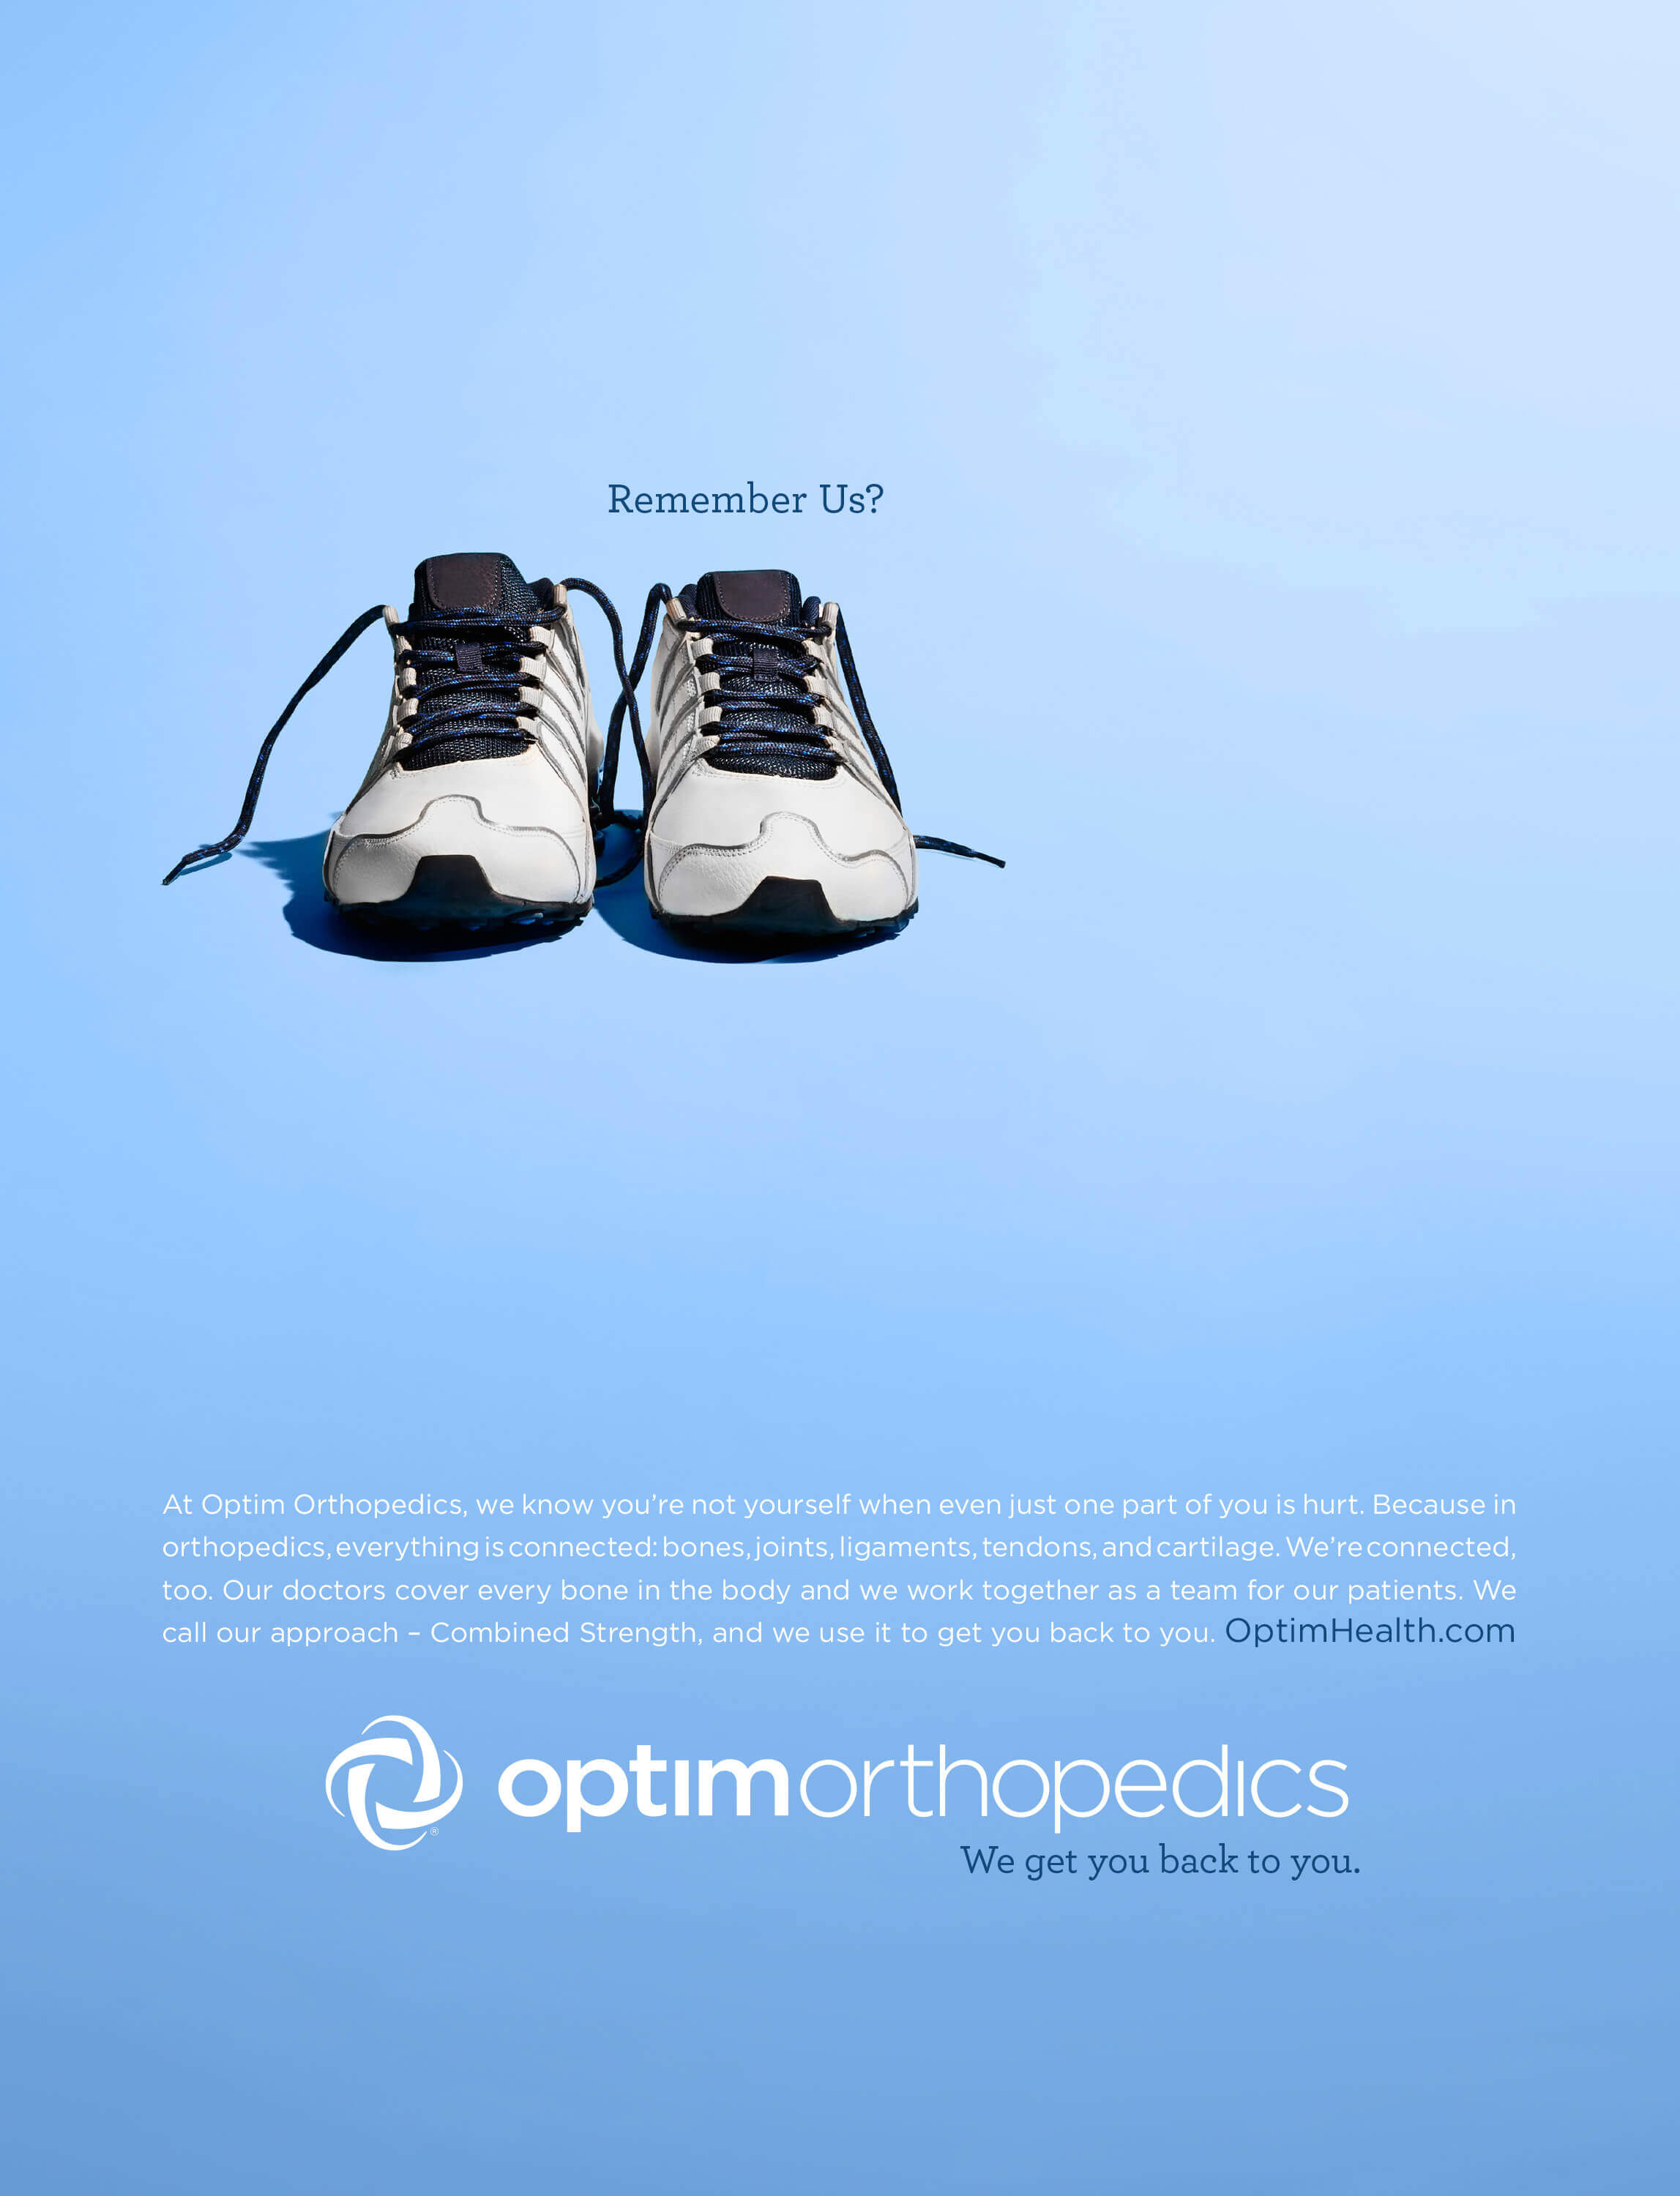 OptimOrtho-MNI-9.5x11.25-Sneakers-Ad-NO-CROP